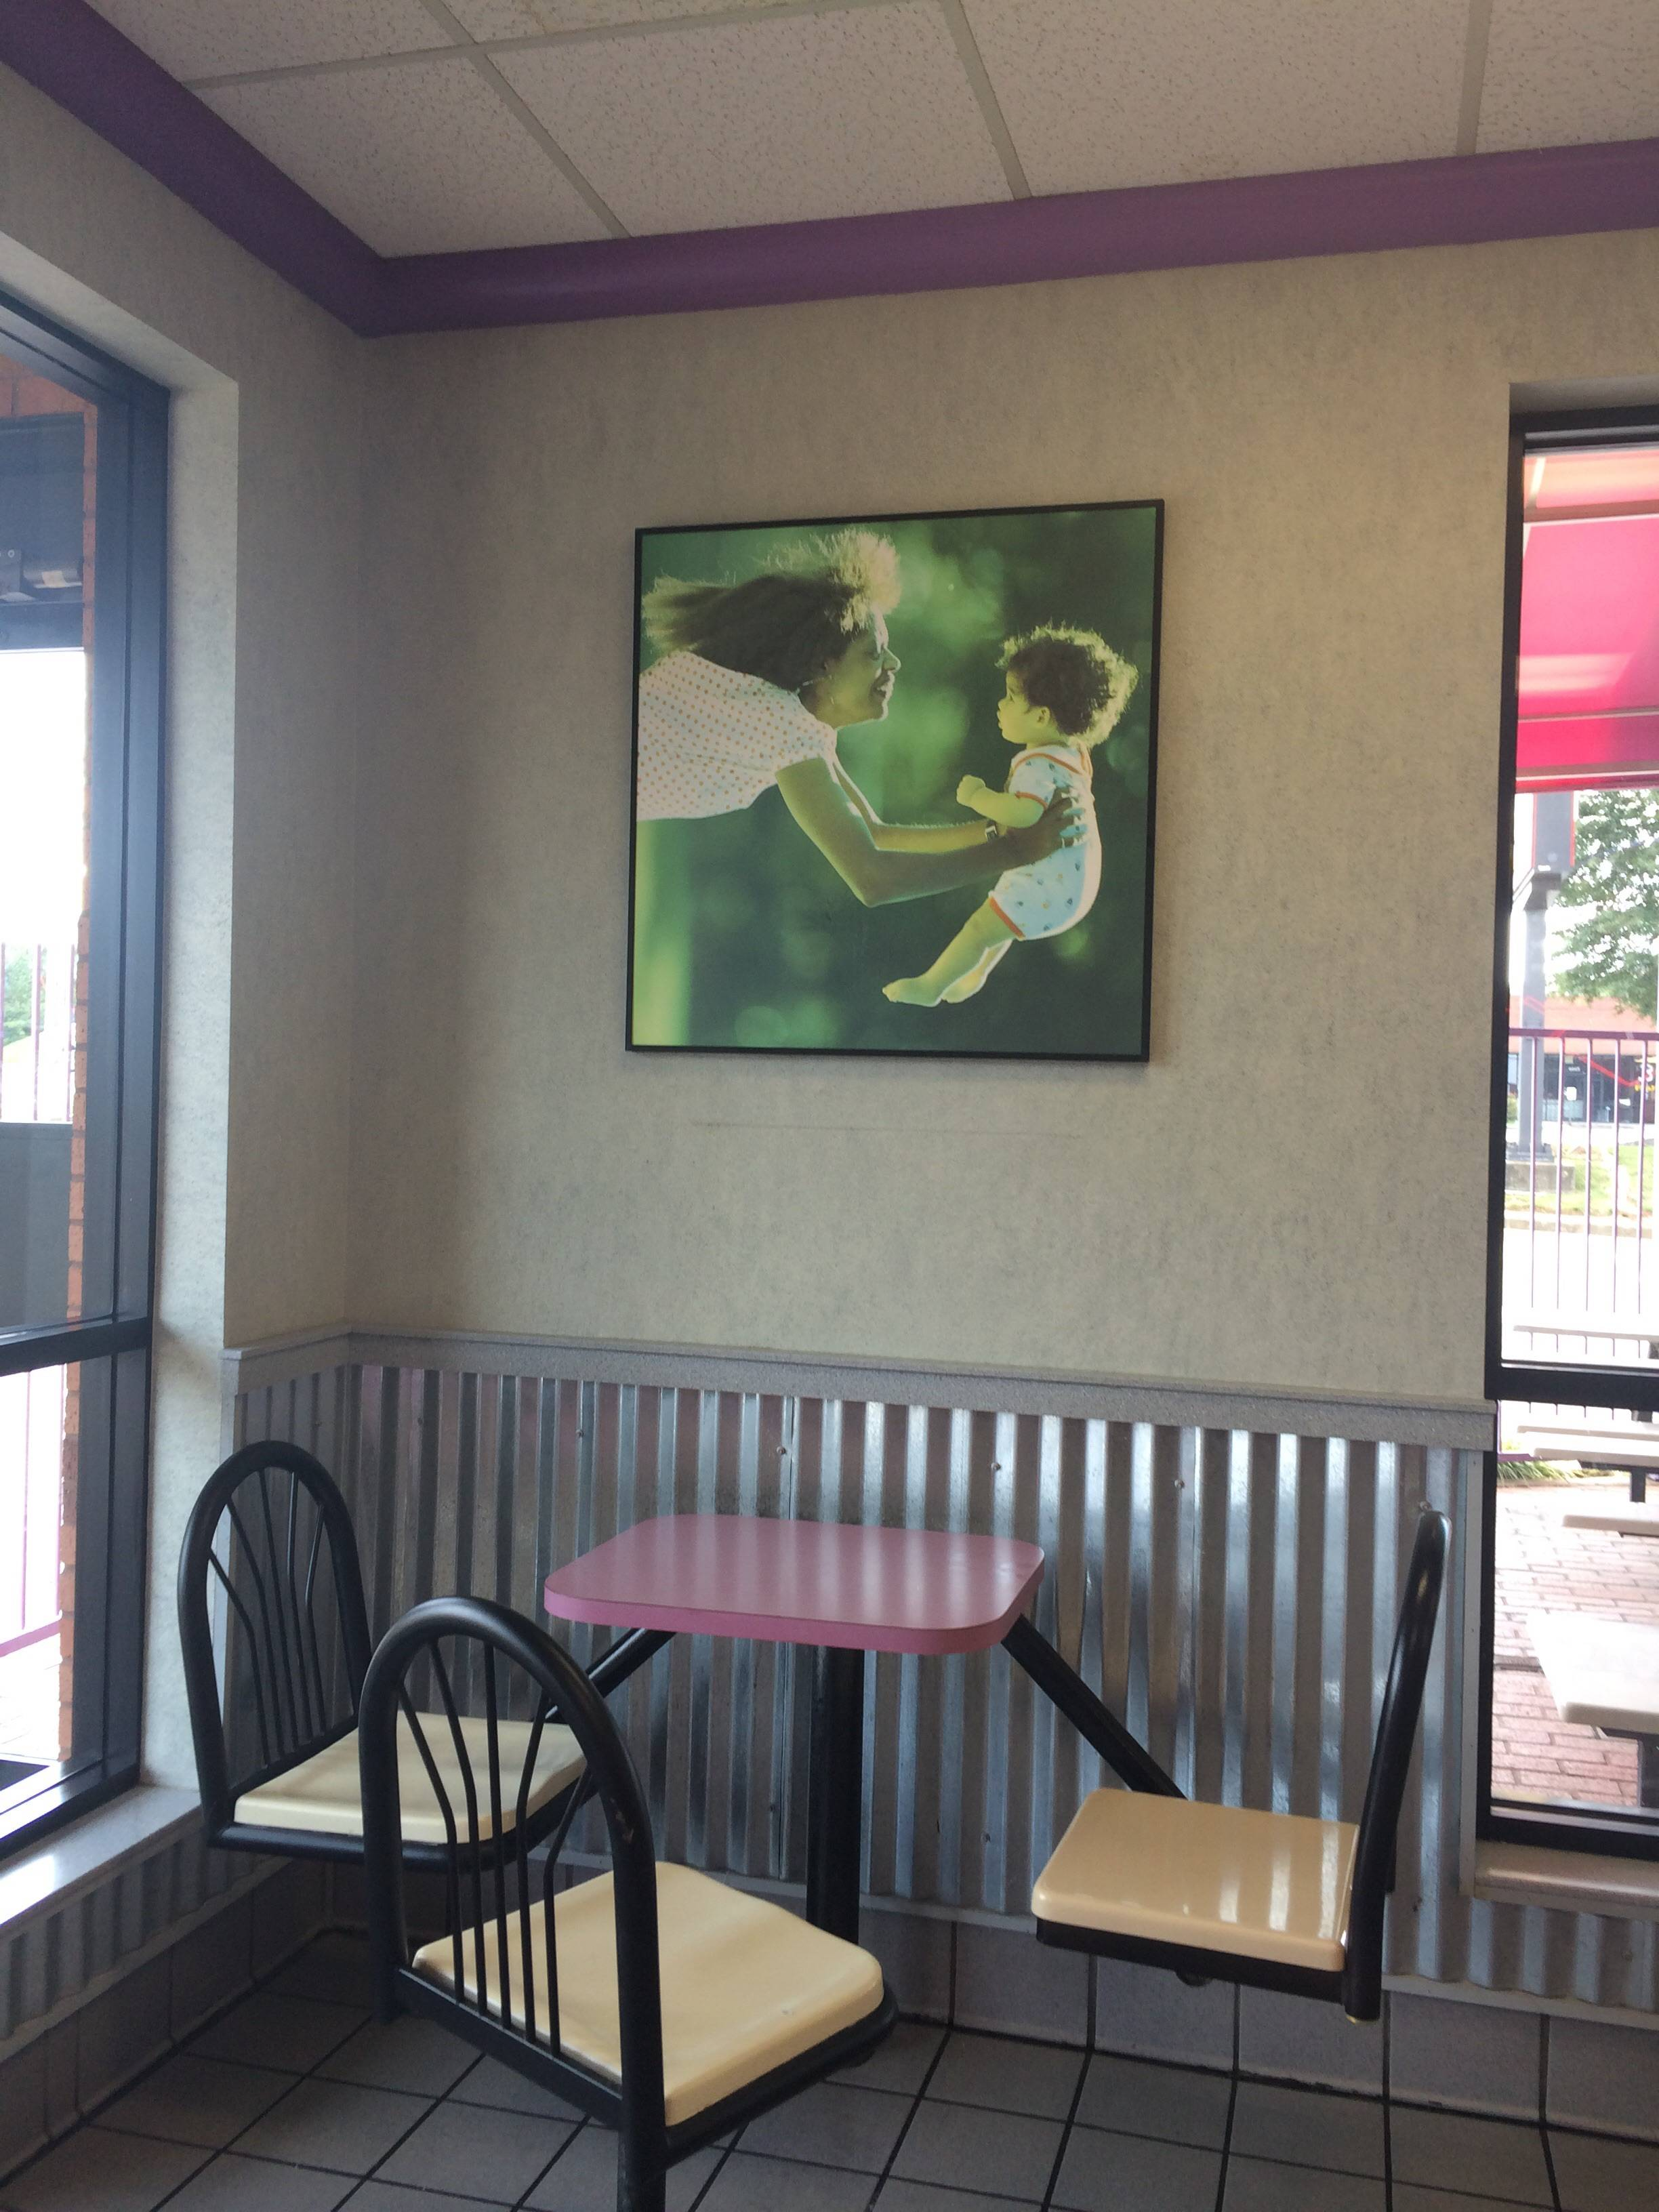 Think the Taco Bell decorators got this pic the wrong way up...